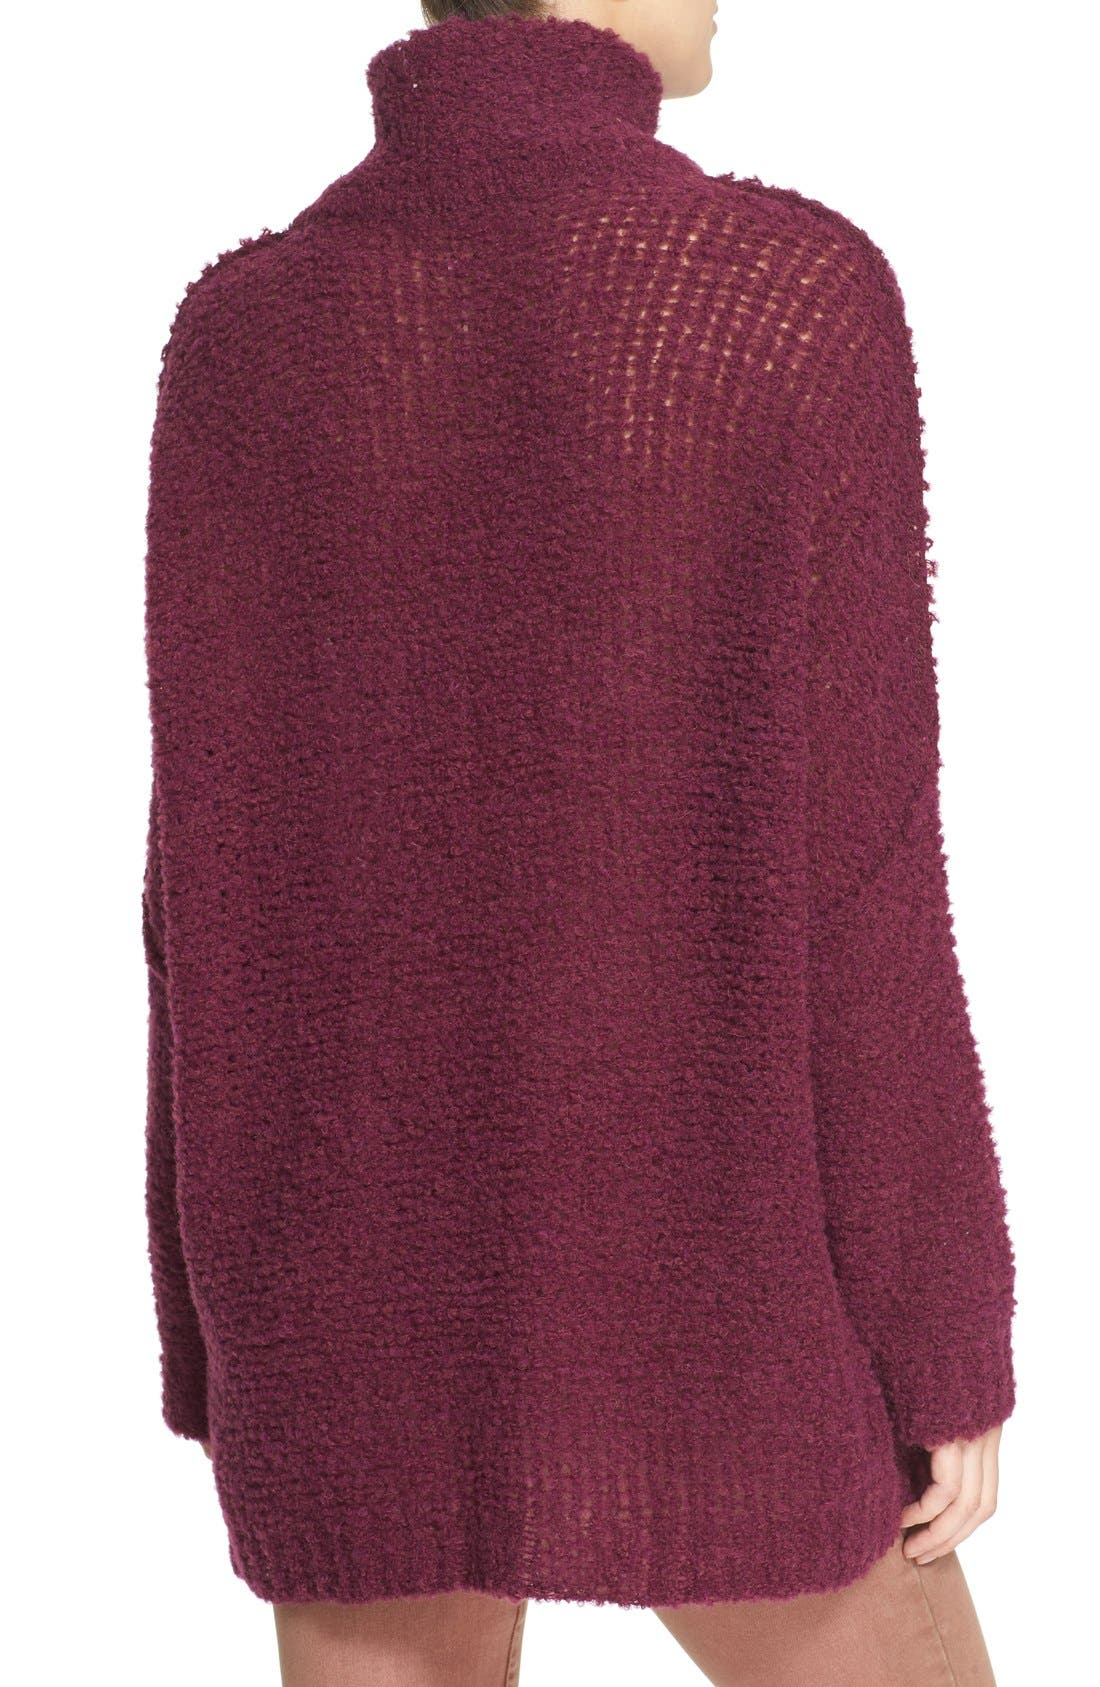 'She's All That' Knit Turtleneck Sweater,                             Alternate thumbnail 14, color,